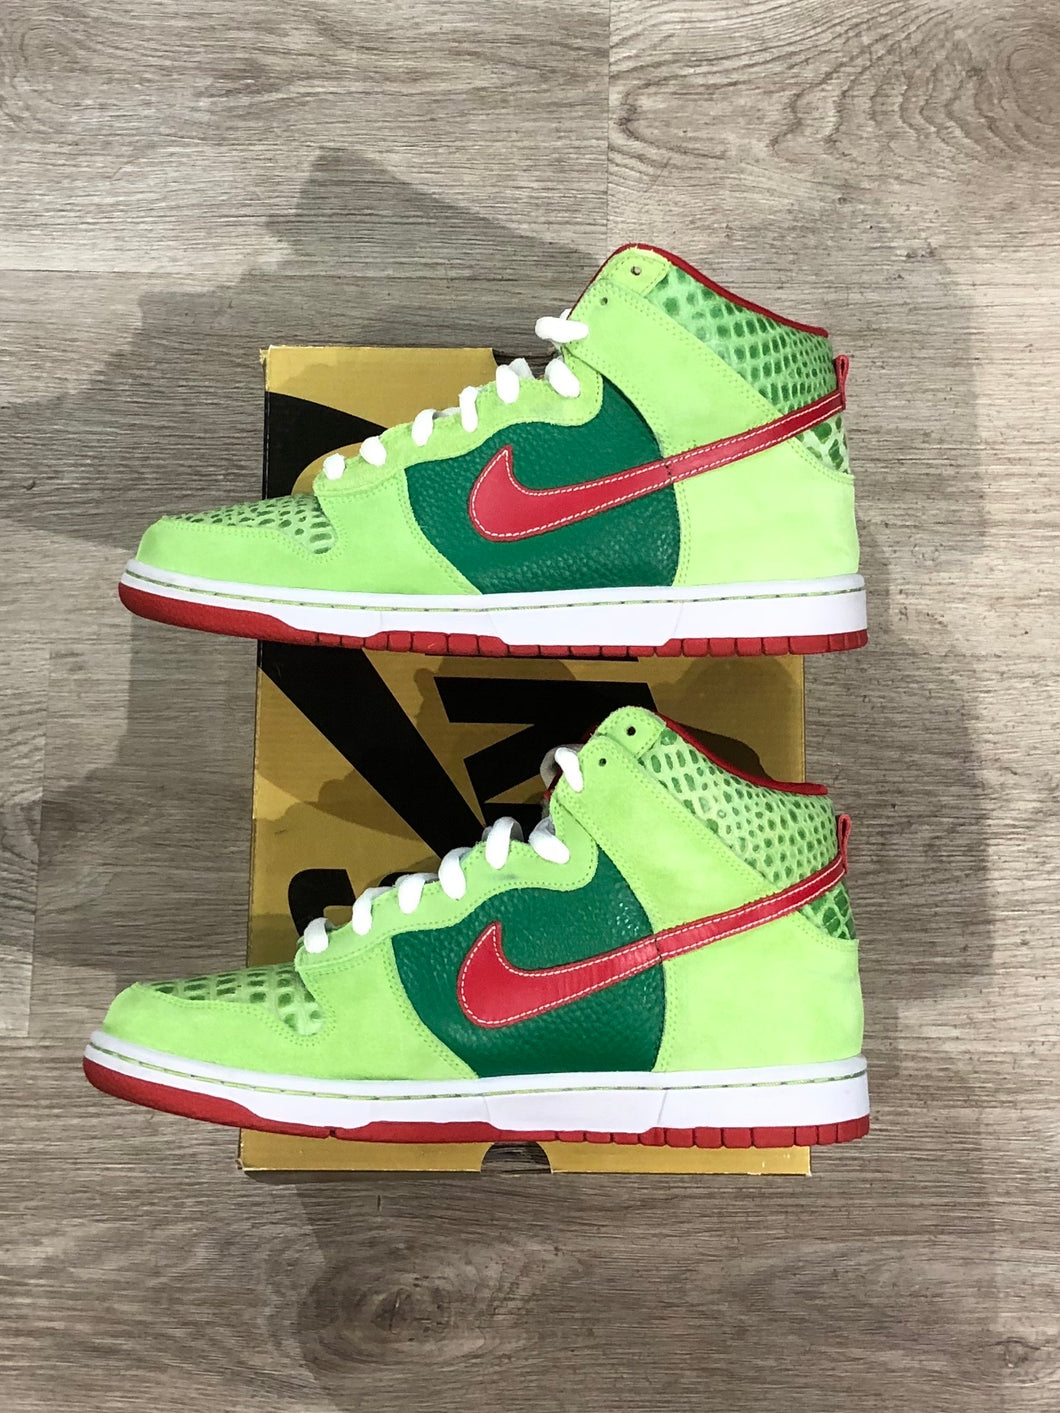 Nike SB Dunk High Pro Dr. Feelgood